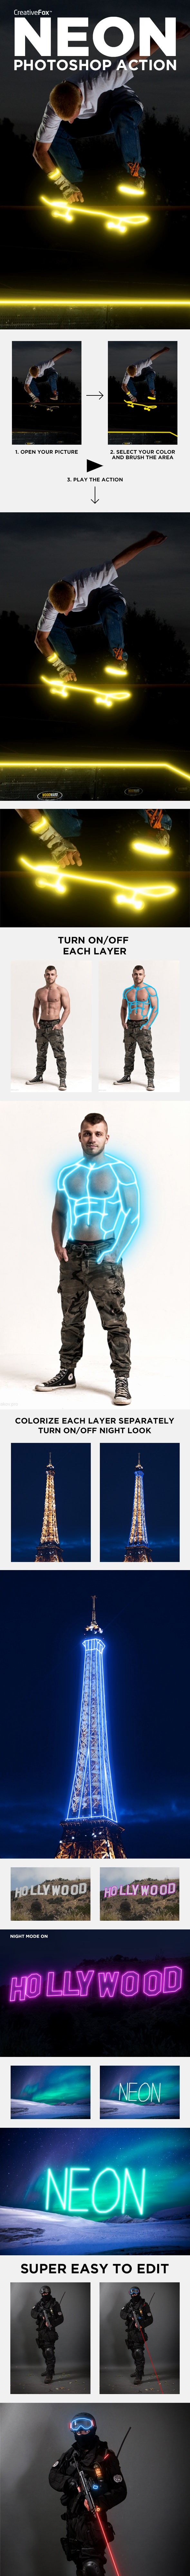 Neon Photoshop Action - Neon Creator Action - Photo Effects Actions